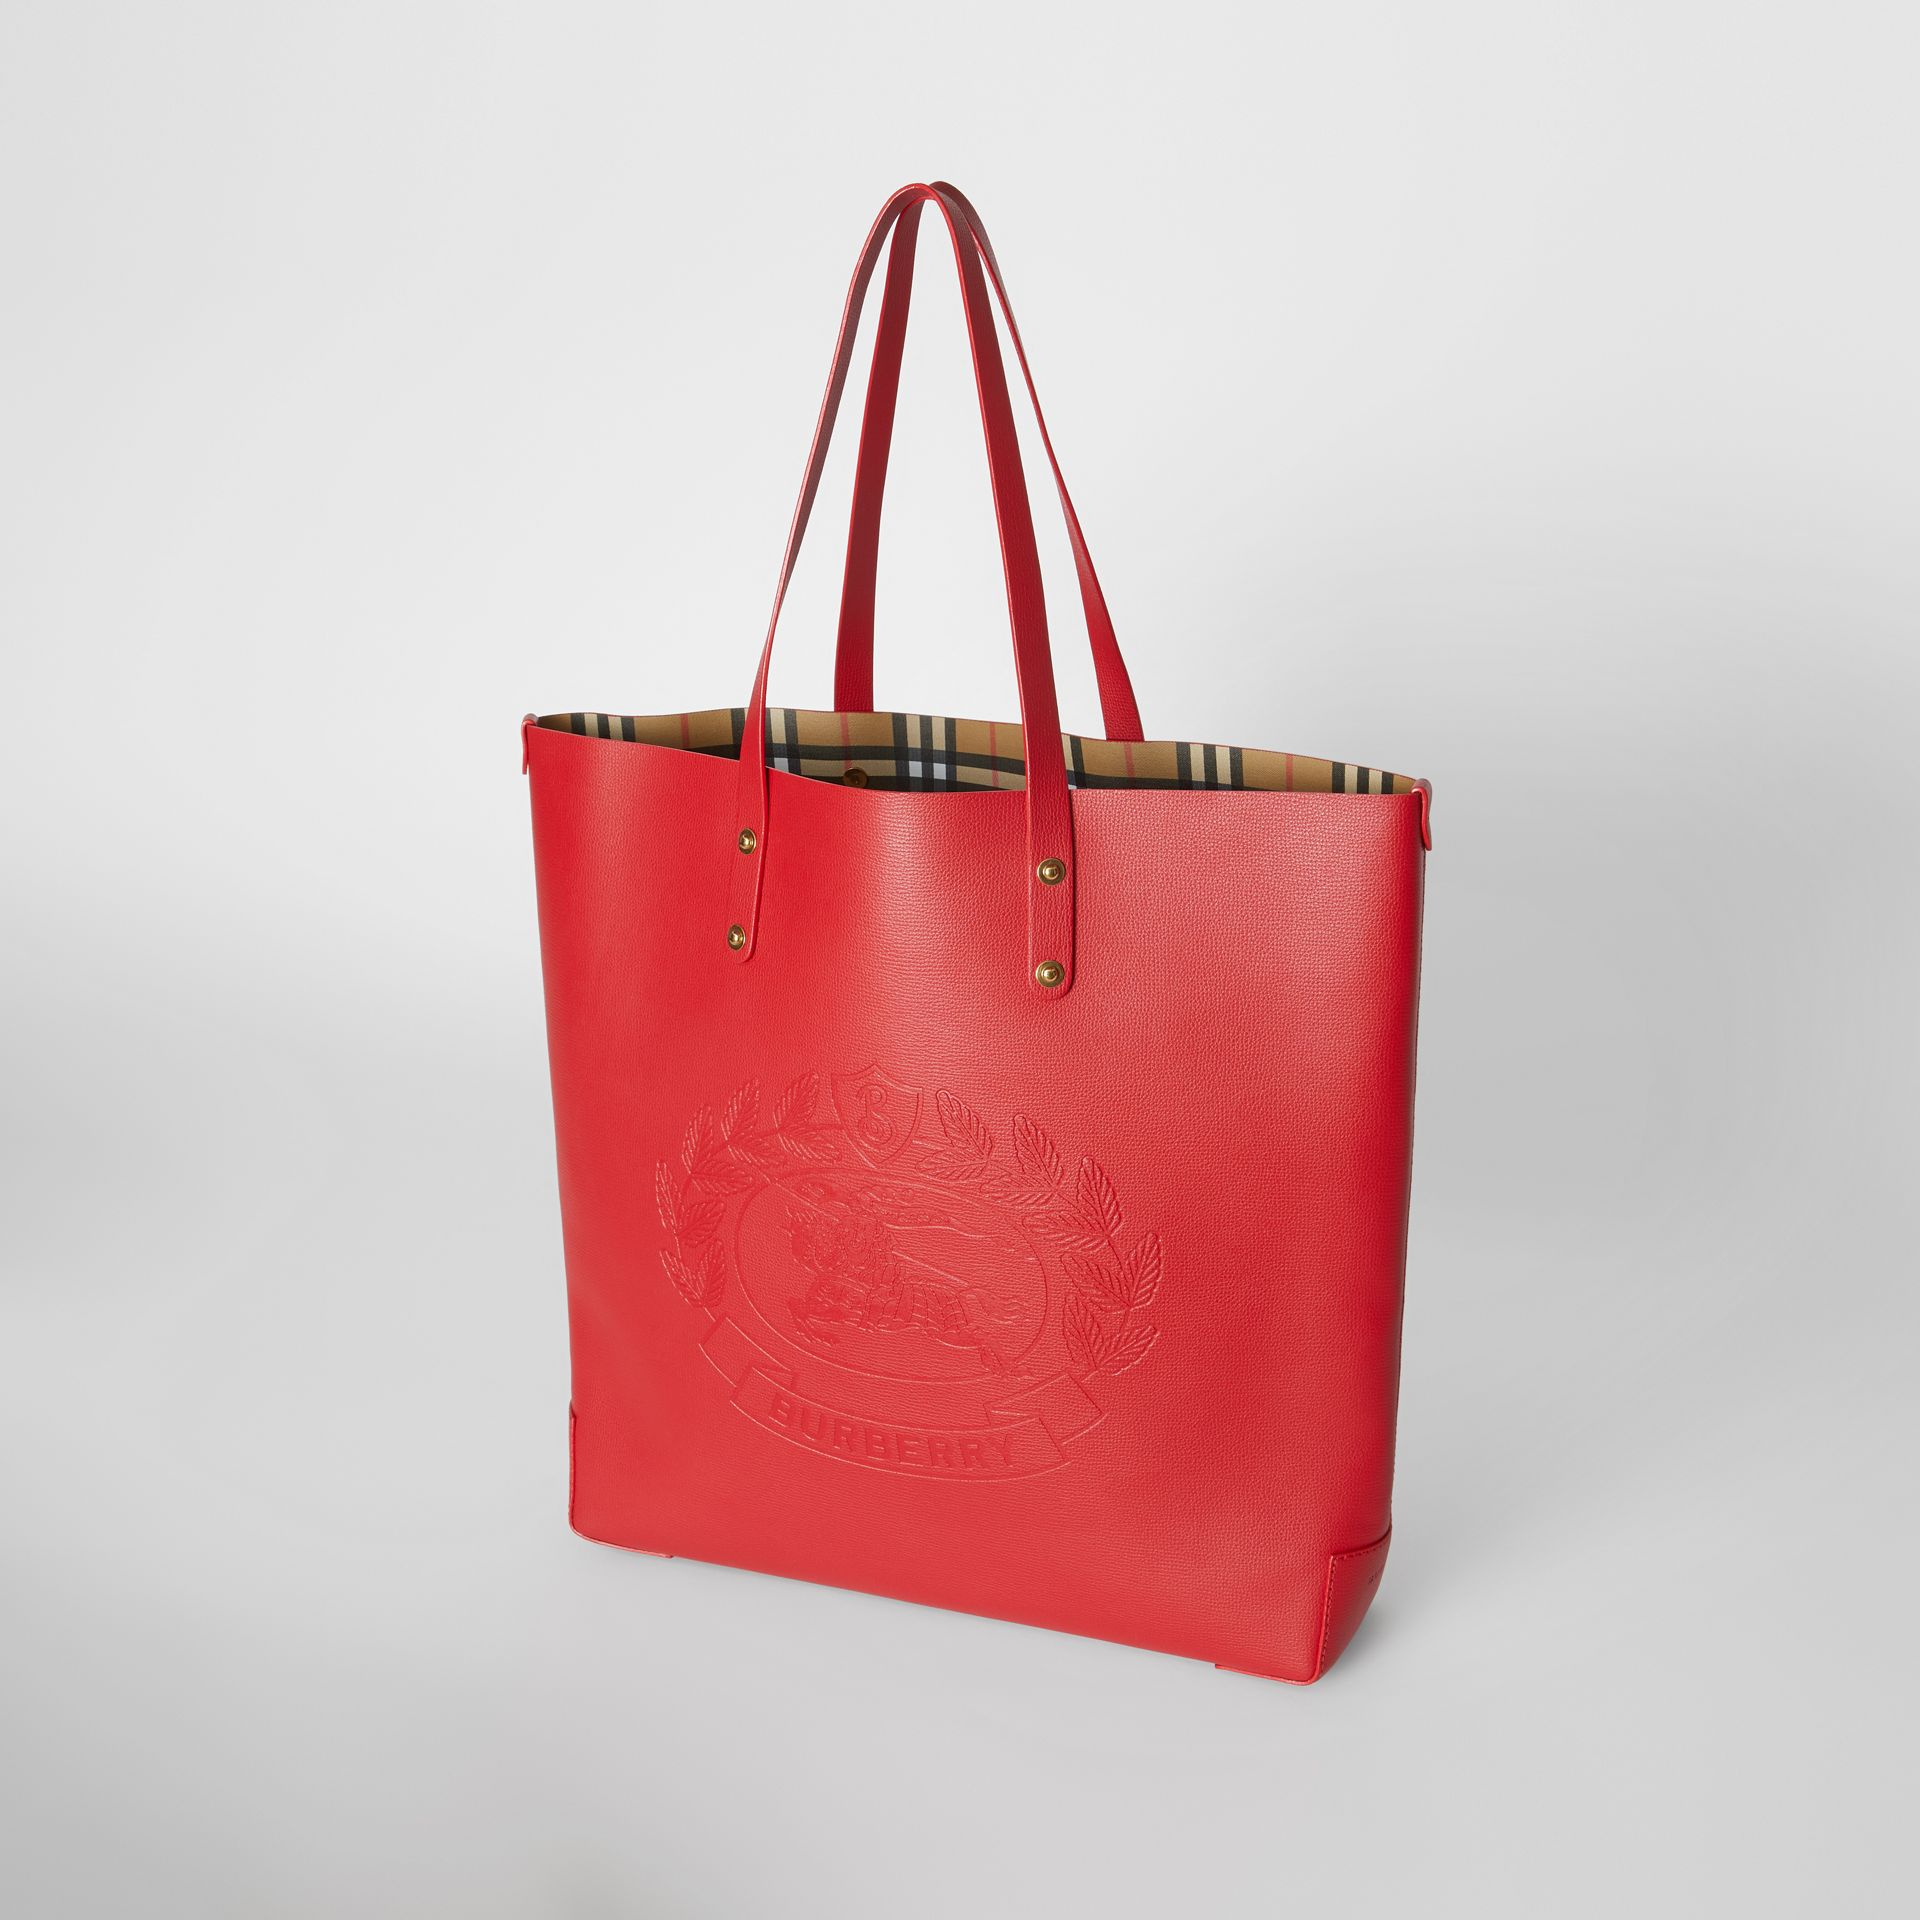 Embossed Crest Leather Tote in Rust Red - Women | Burberry United States - gallery image 3